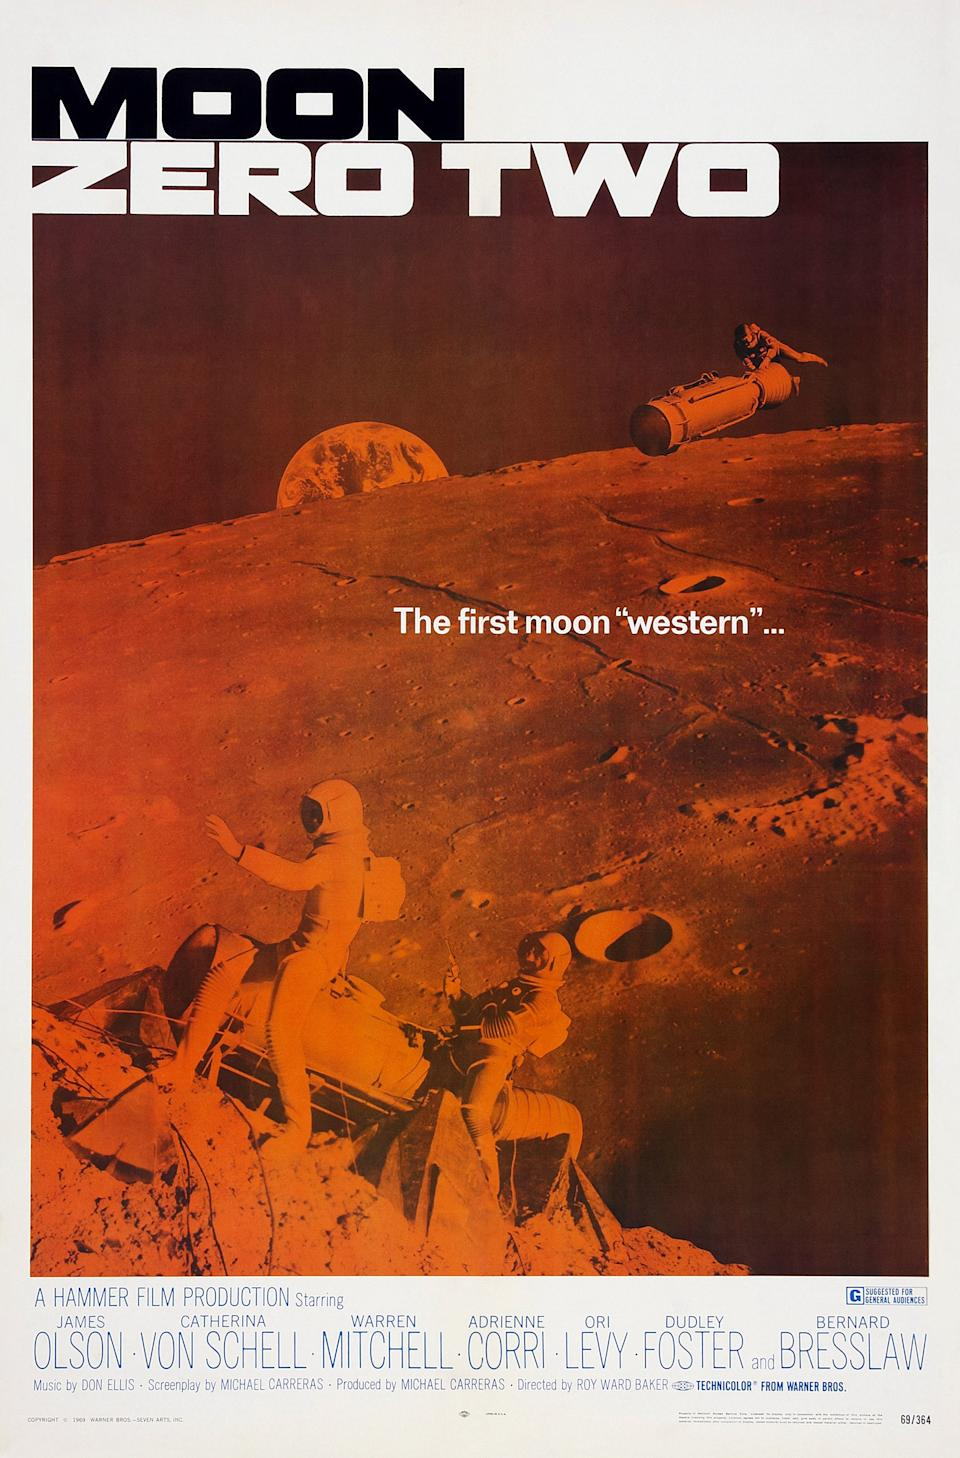 Moon Zero Two, poster, US poster art, 1969. (Photo by LMPC via Getty Images)